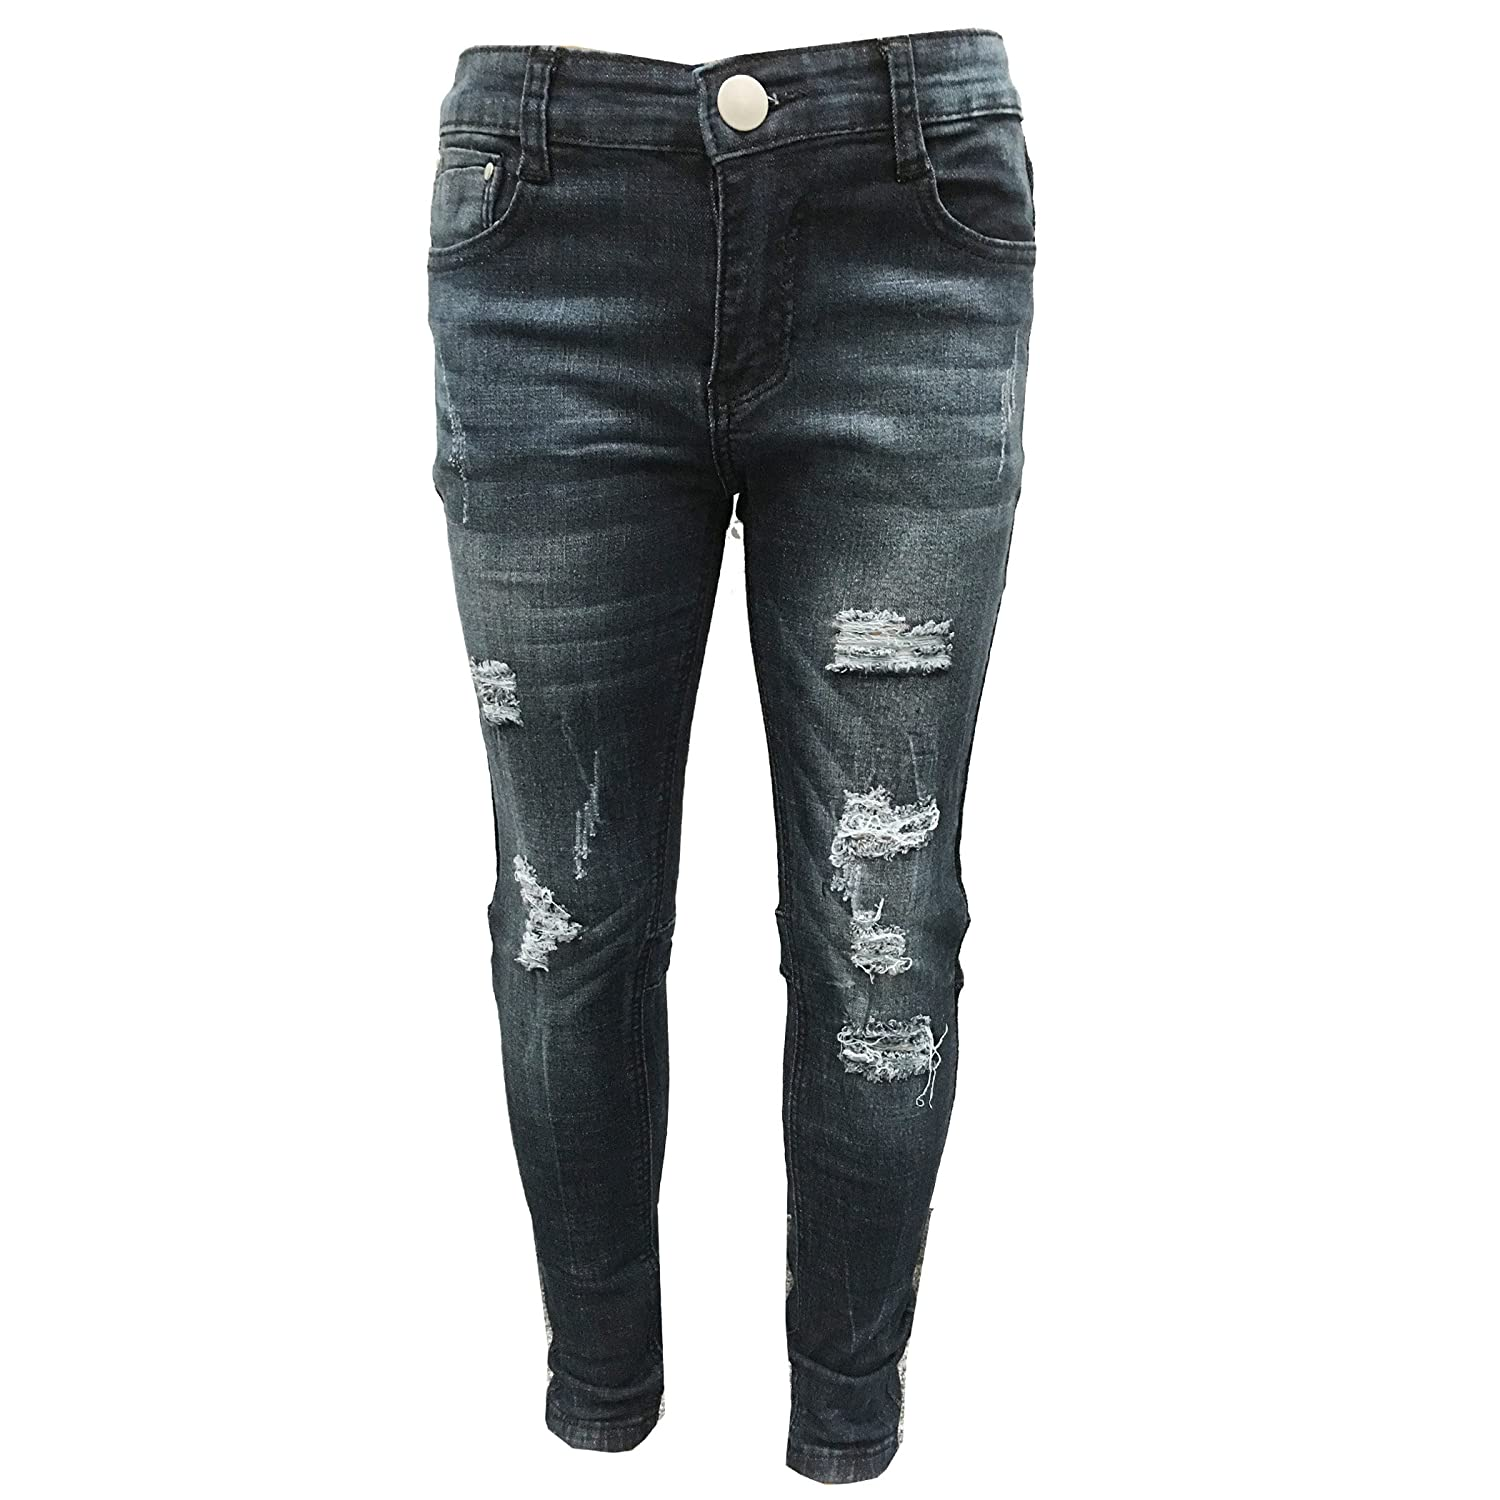 Farstowe Brand New Girls Stretchy Jeans Kids Jeggings Girls Ripped Skinny Pants Kids Jeans 5 6 7 8 9 10 11 12 Years